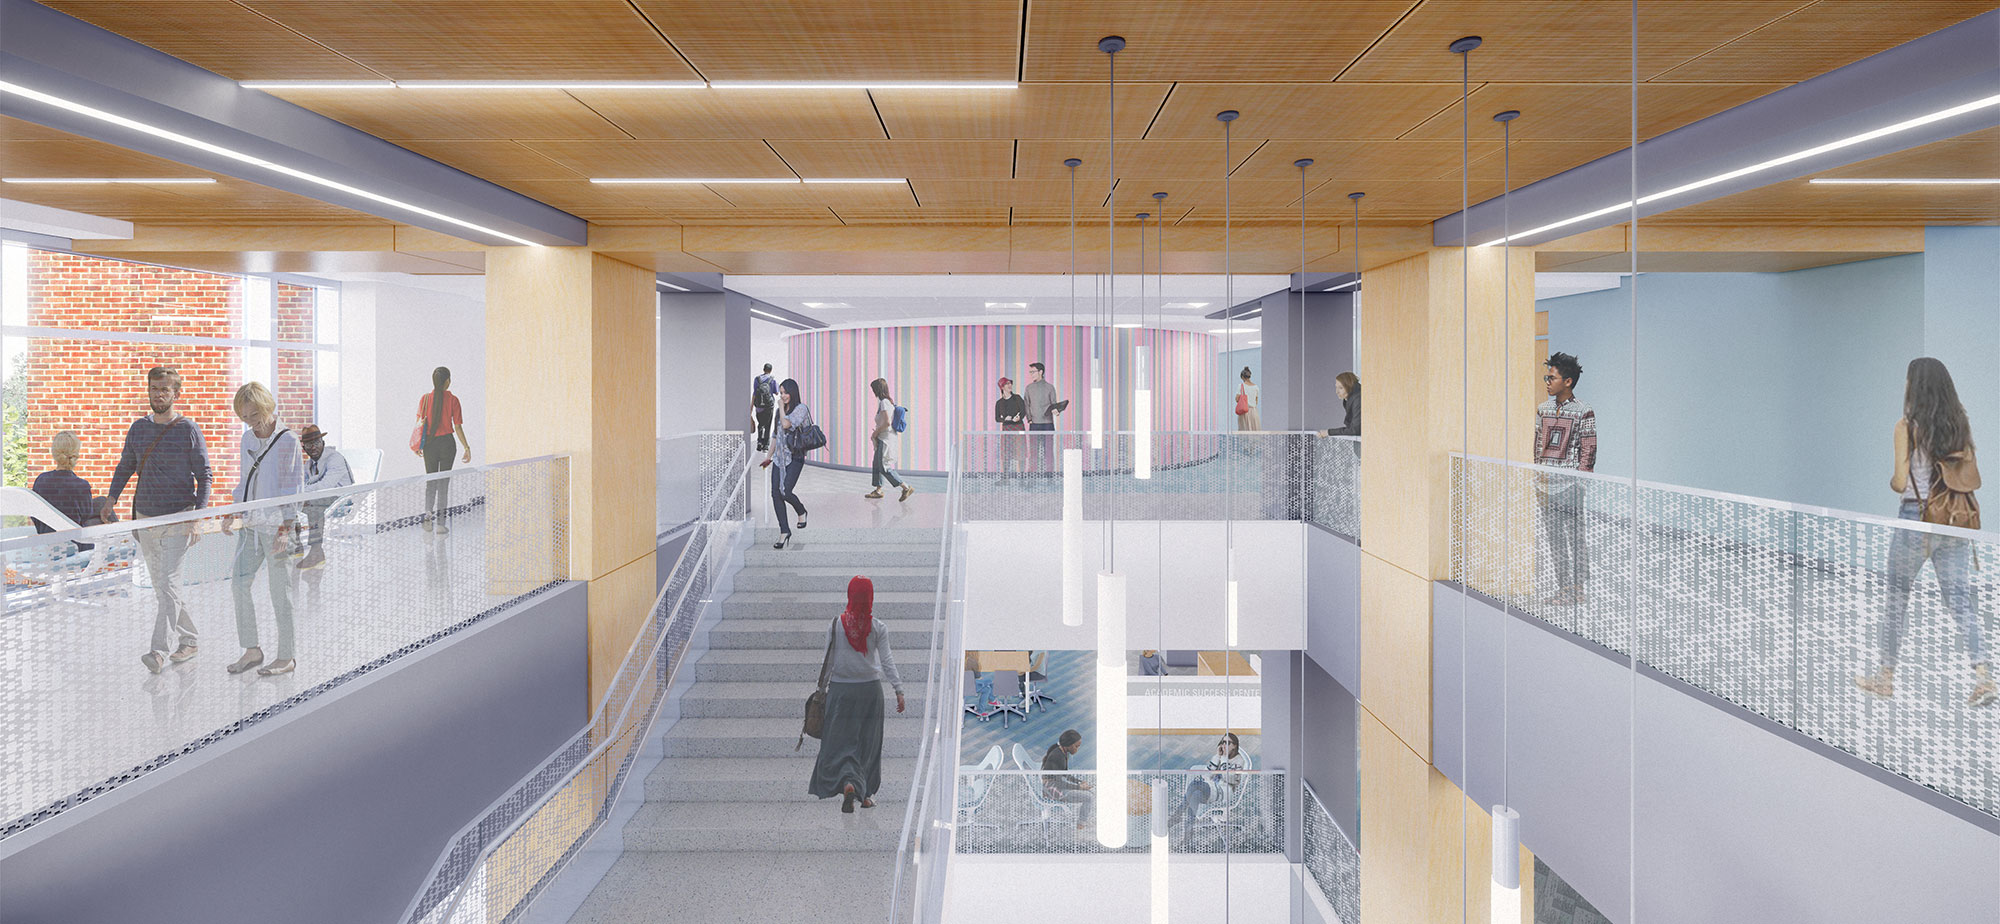 Ncsu Academic Calendar Fall 2020 Hill Library Renovation featuring the Academic Success Center | NC